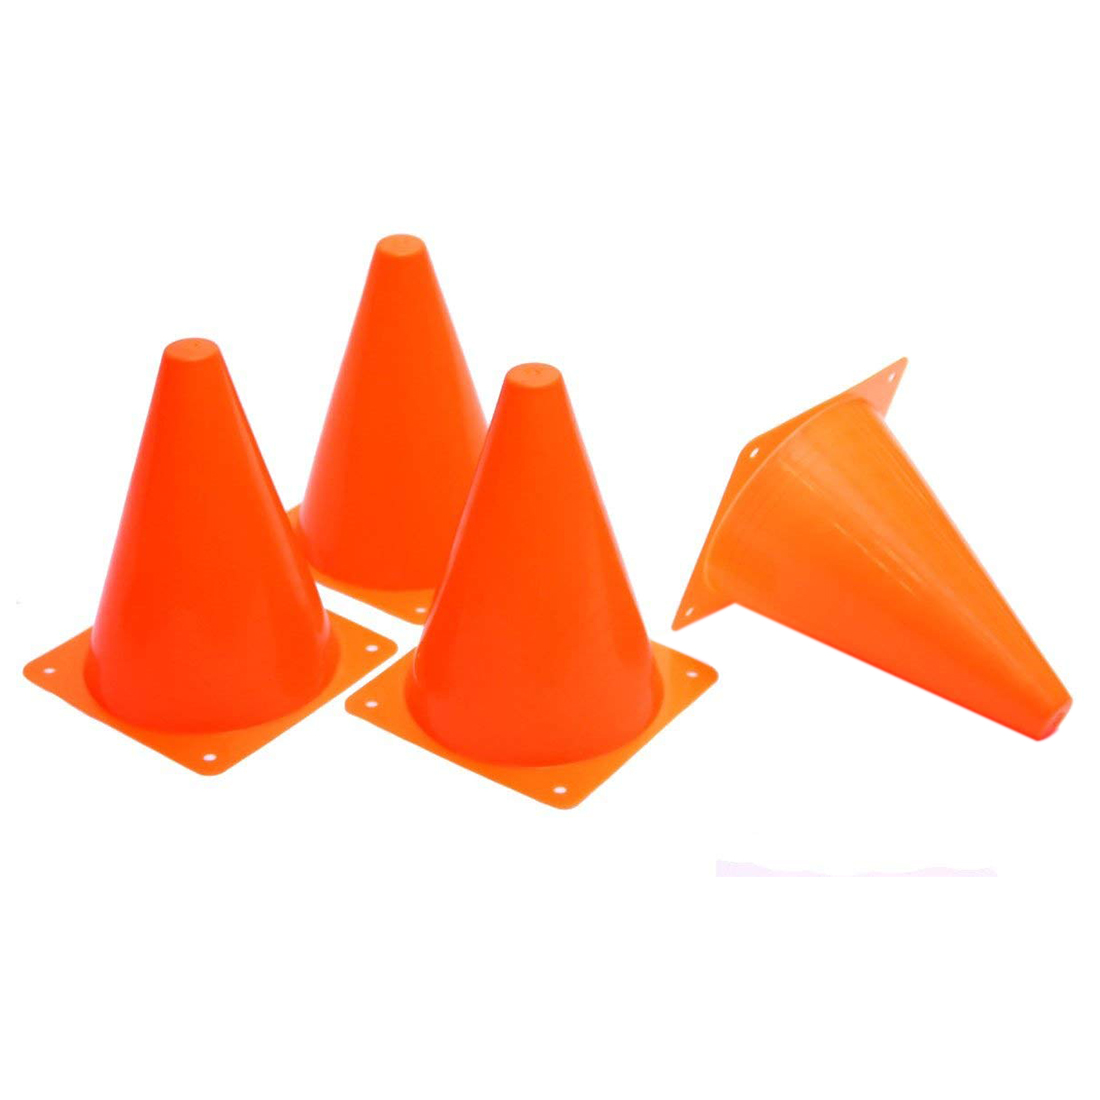 Game Orange Traffic Cones 1Dz Ausdauertraining Fitness & Jogging